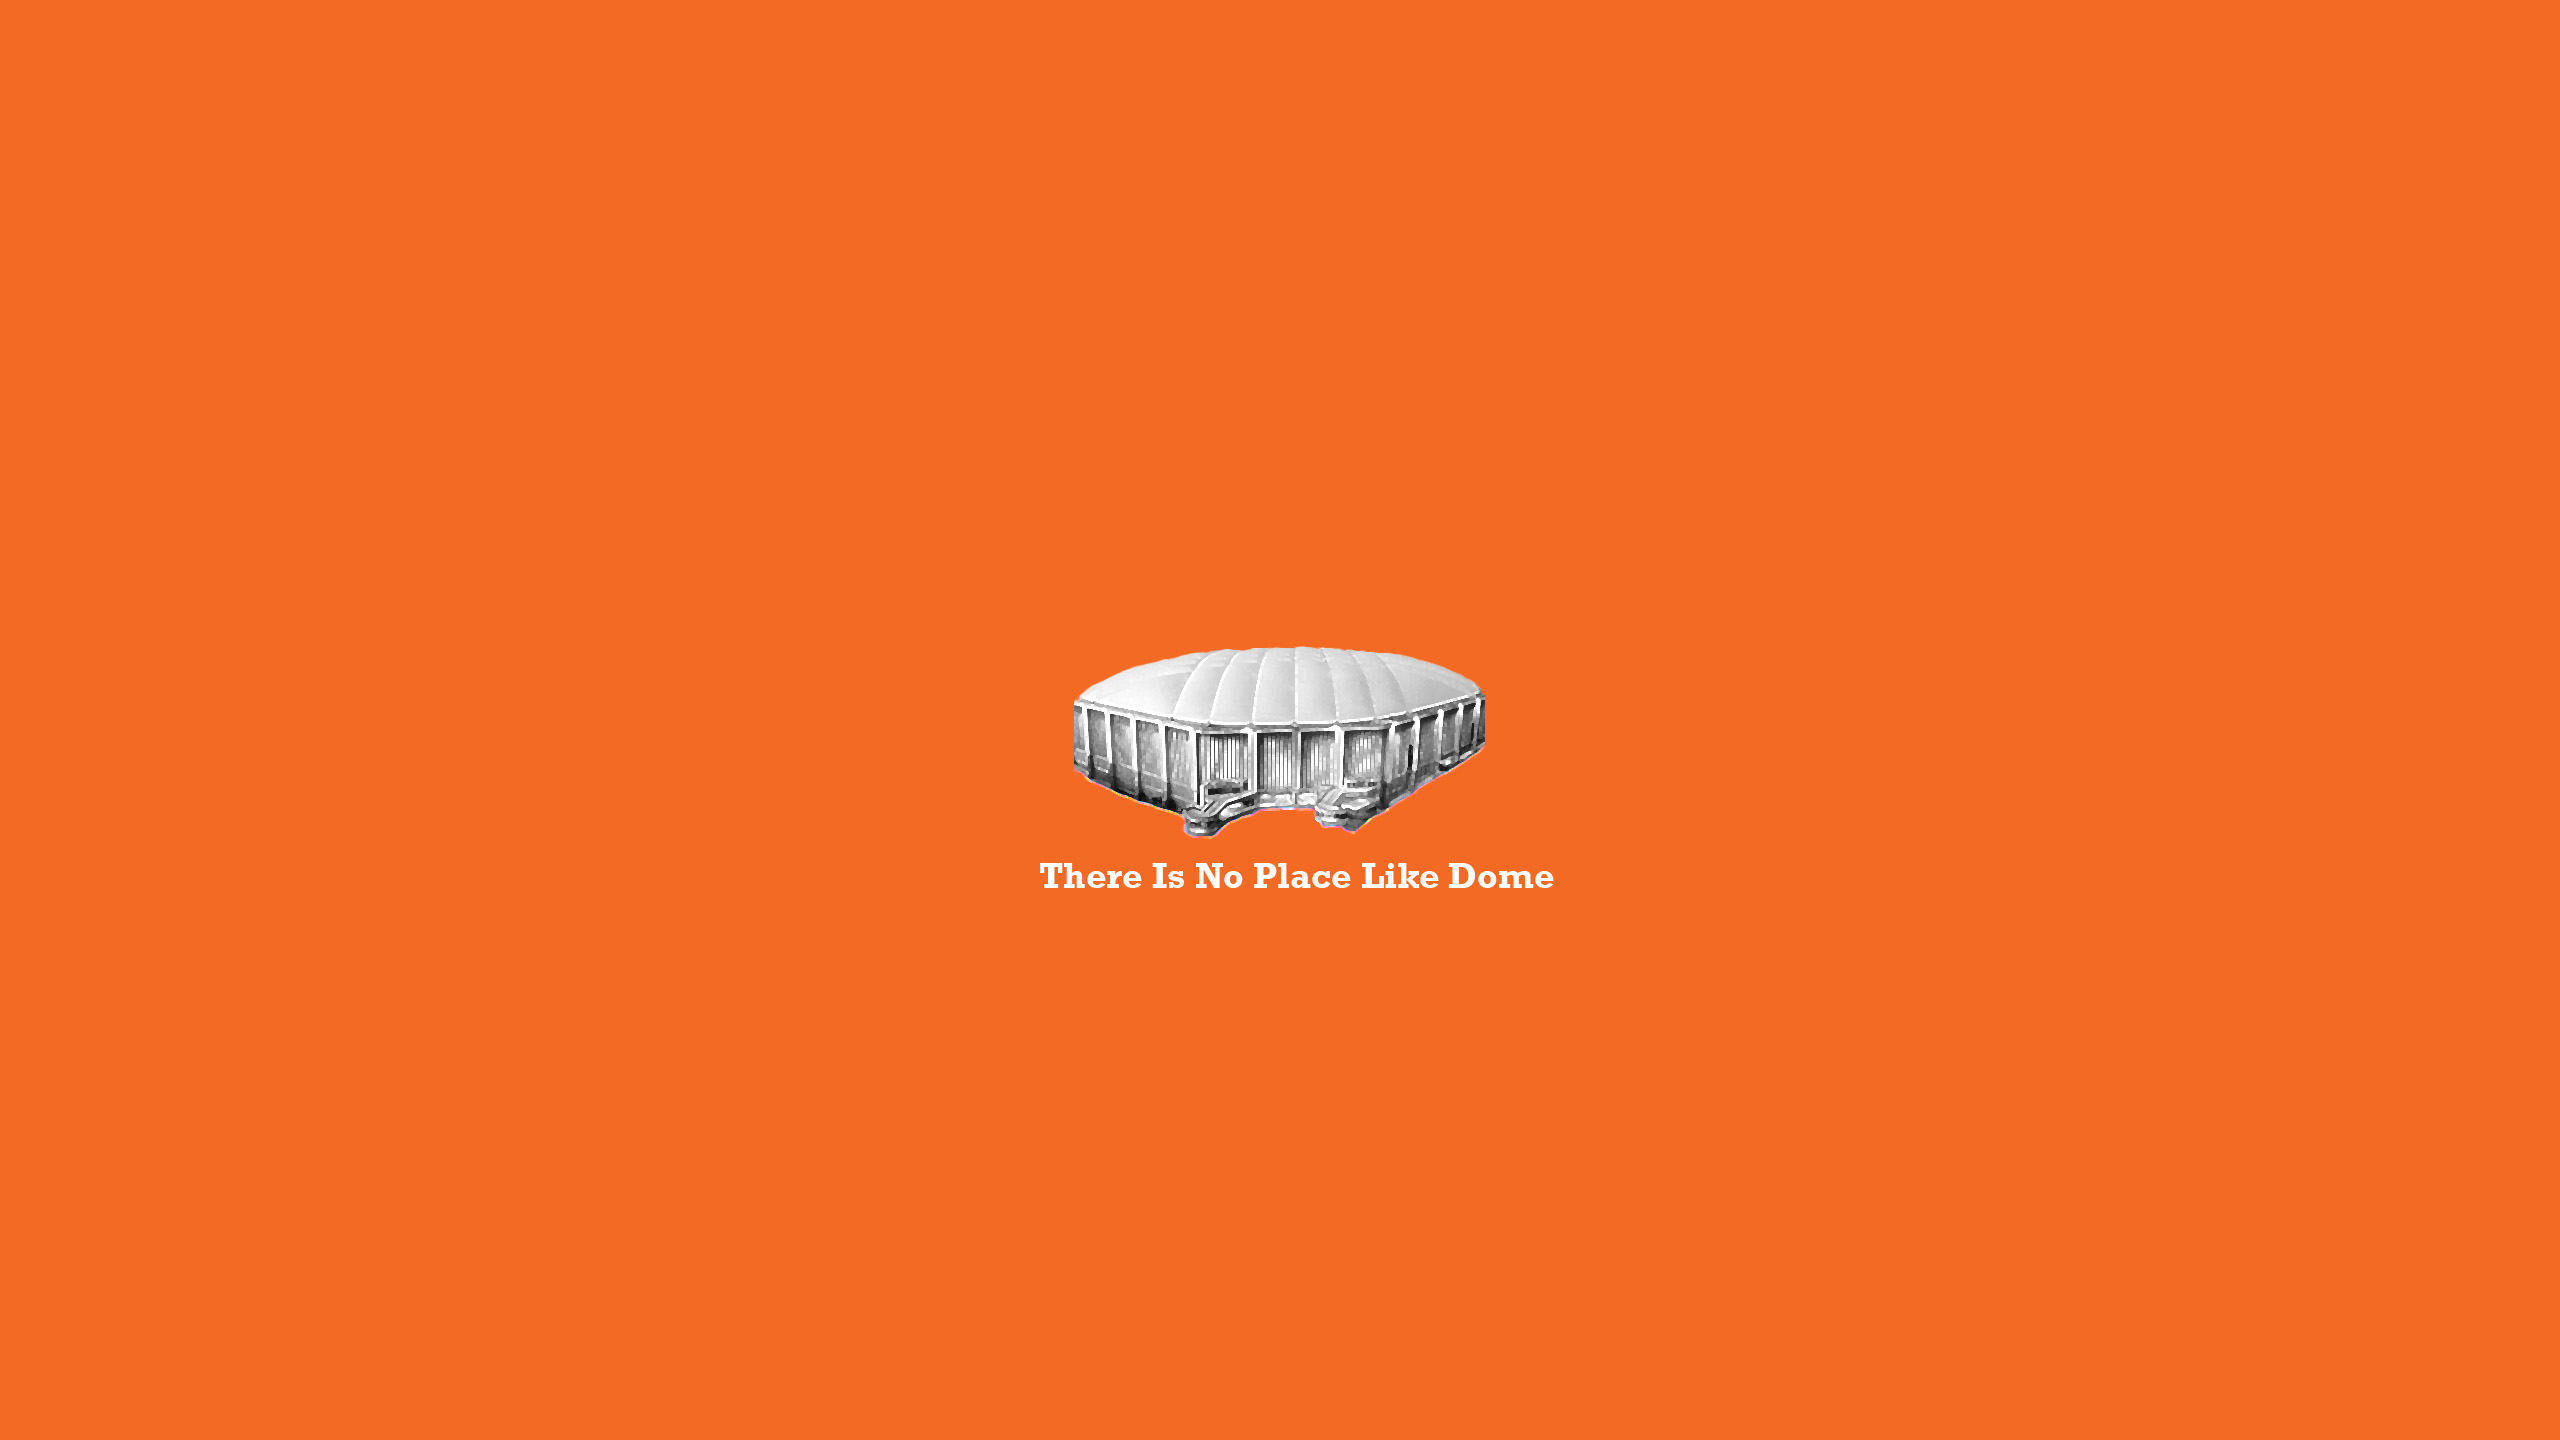 Syracuse - There Is No Place Like Dome